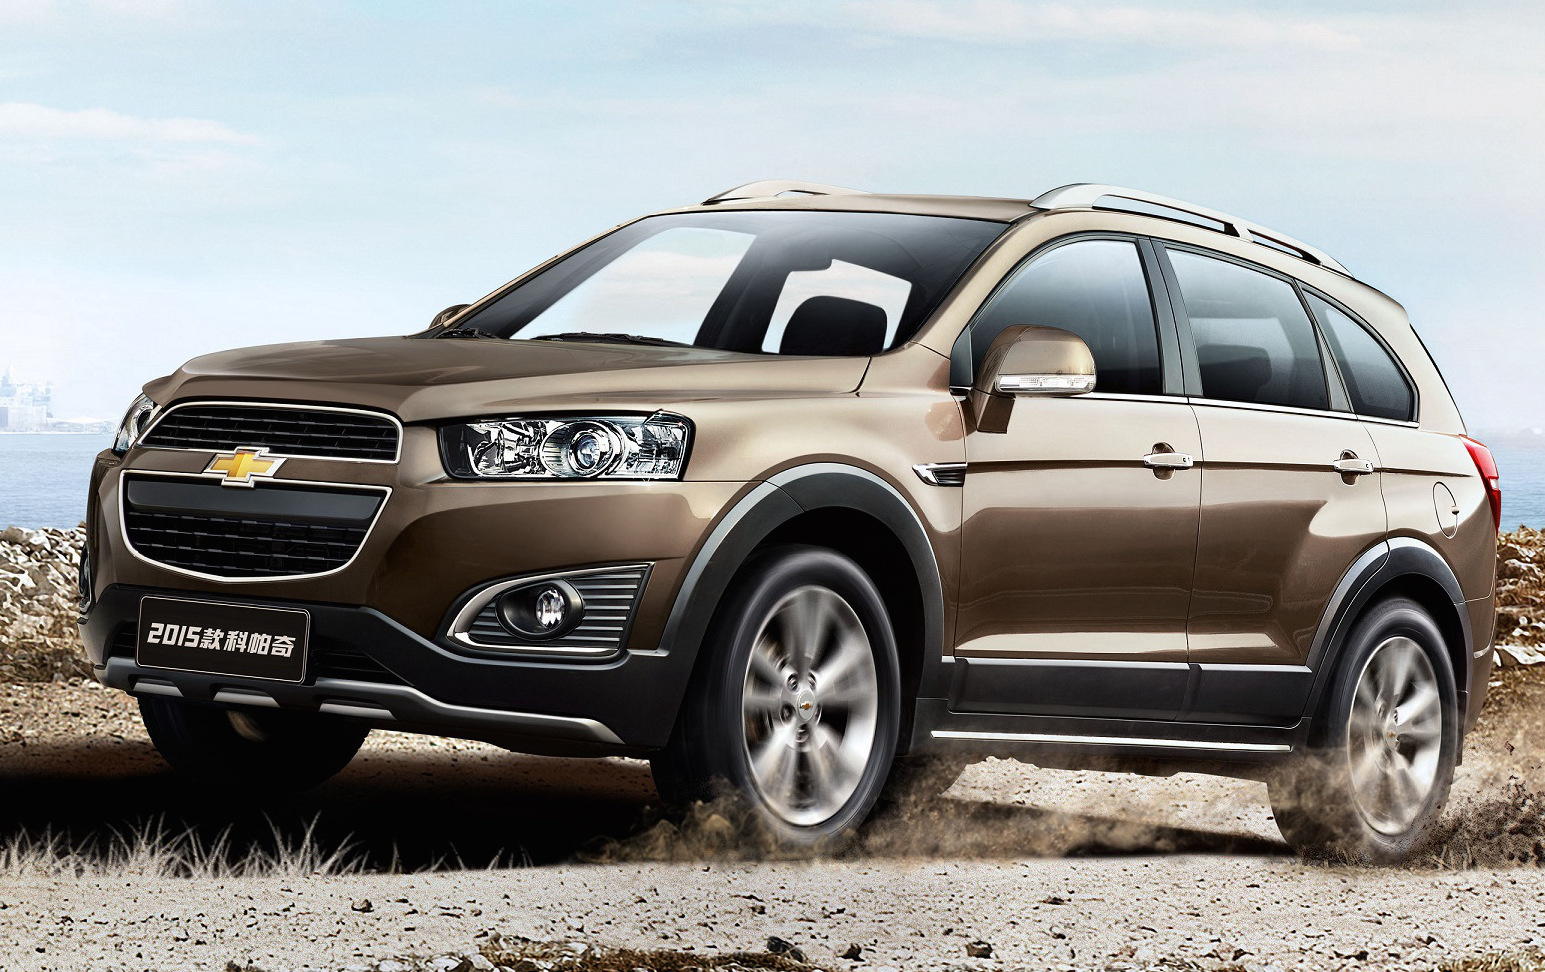 2015 chevrolet captiva sport overview cargurus. Black Bedroom Furniture Sets. Home Design Ideas